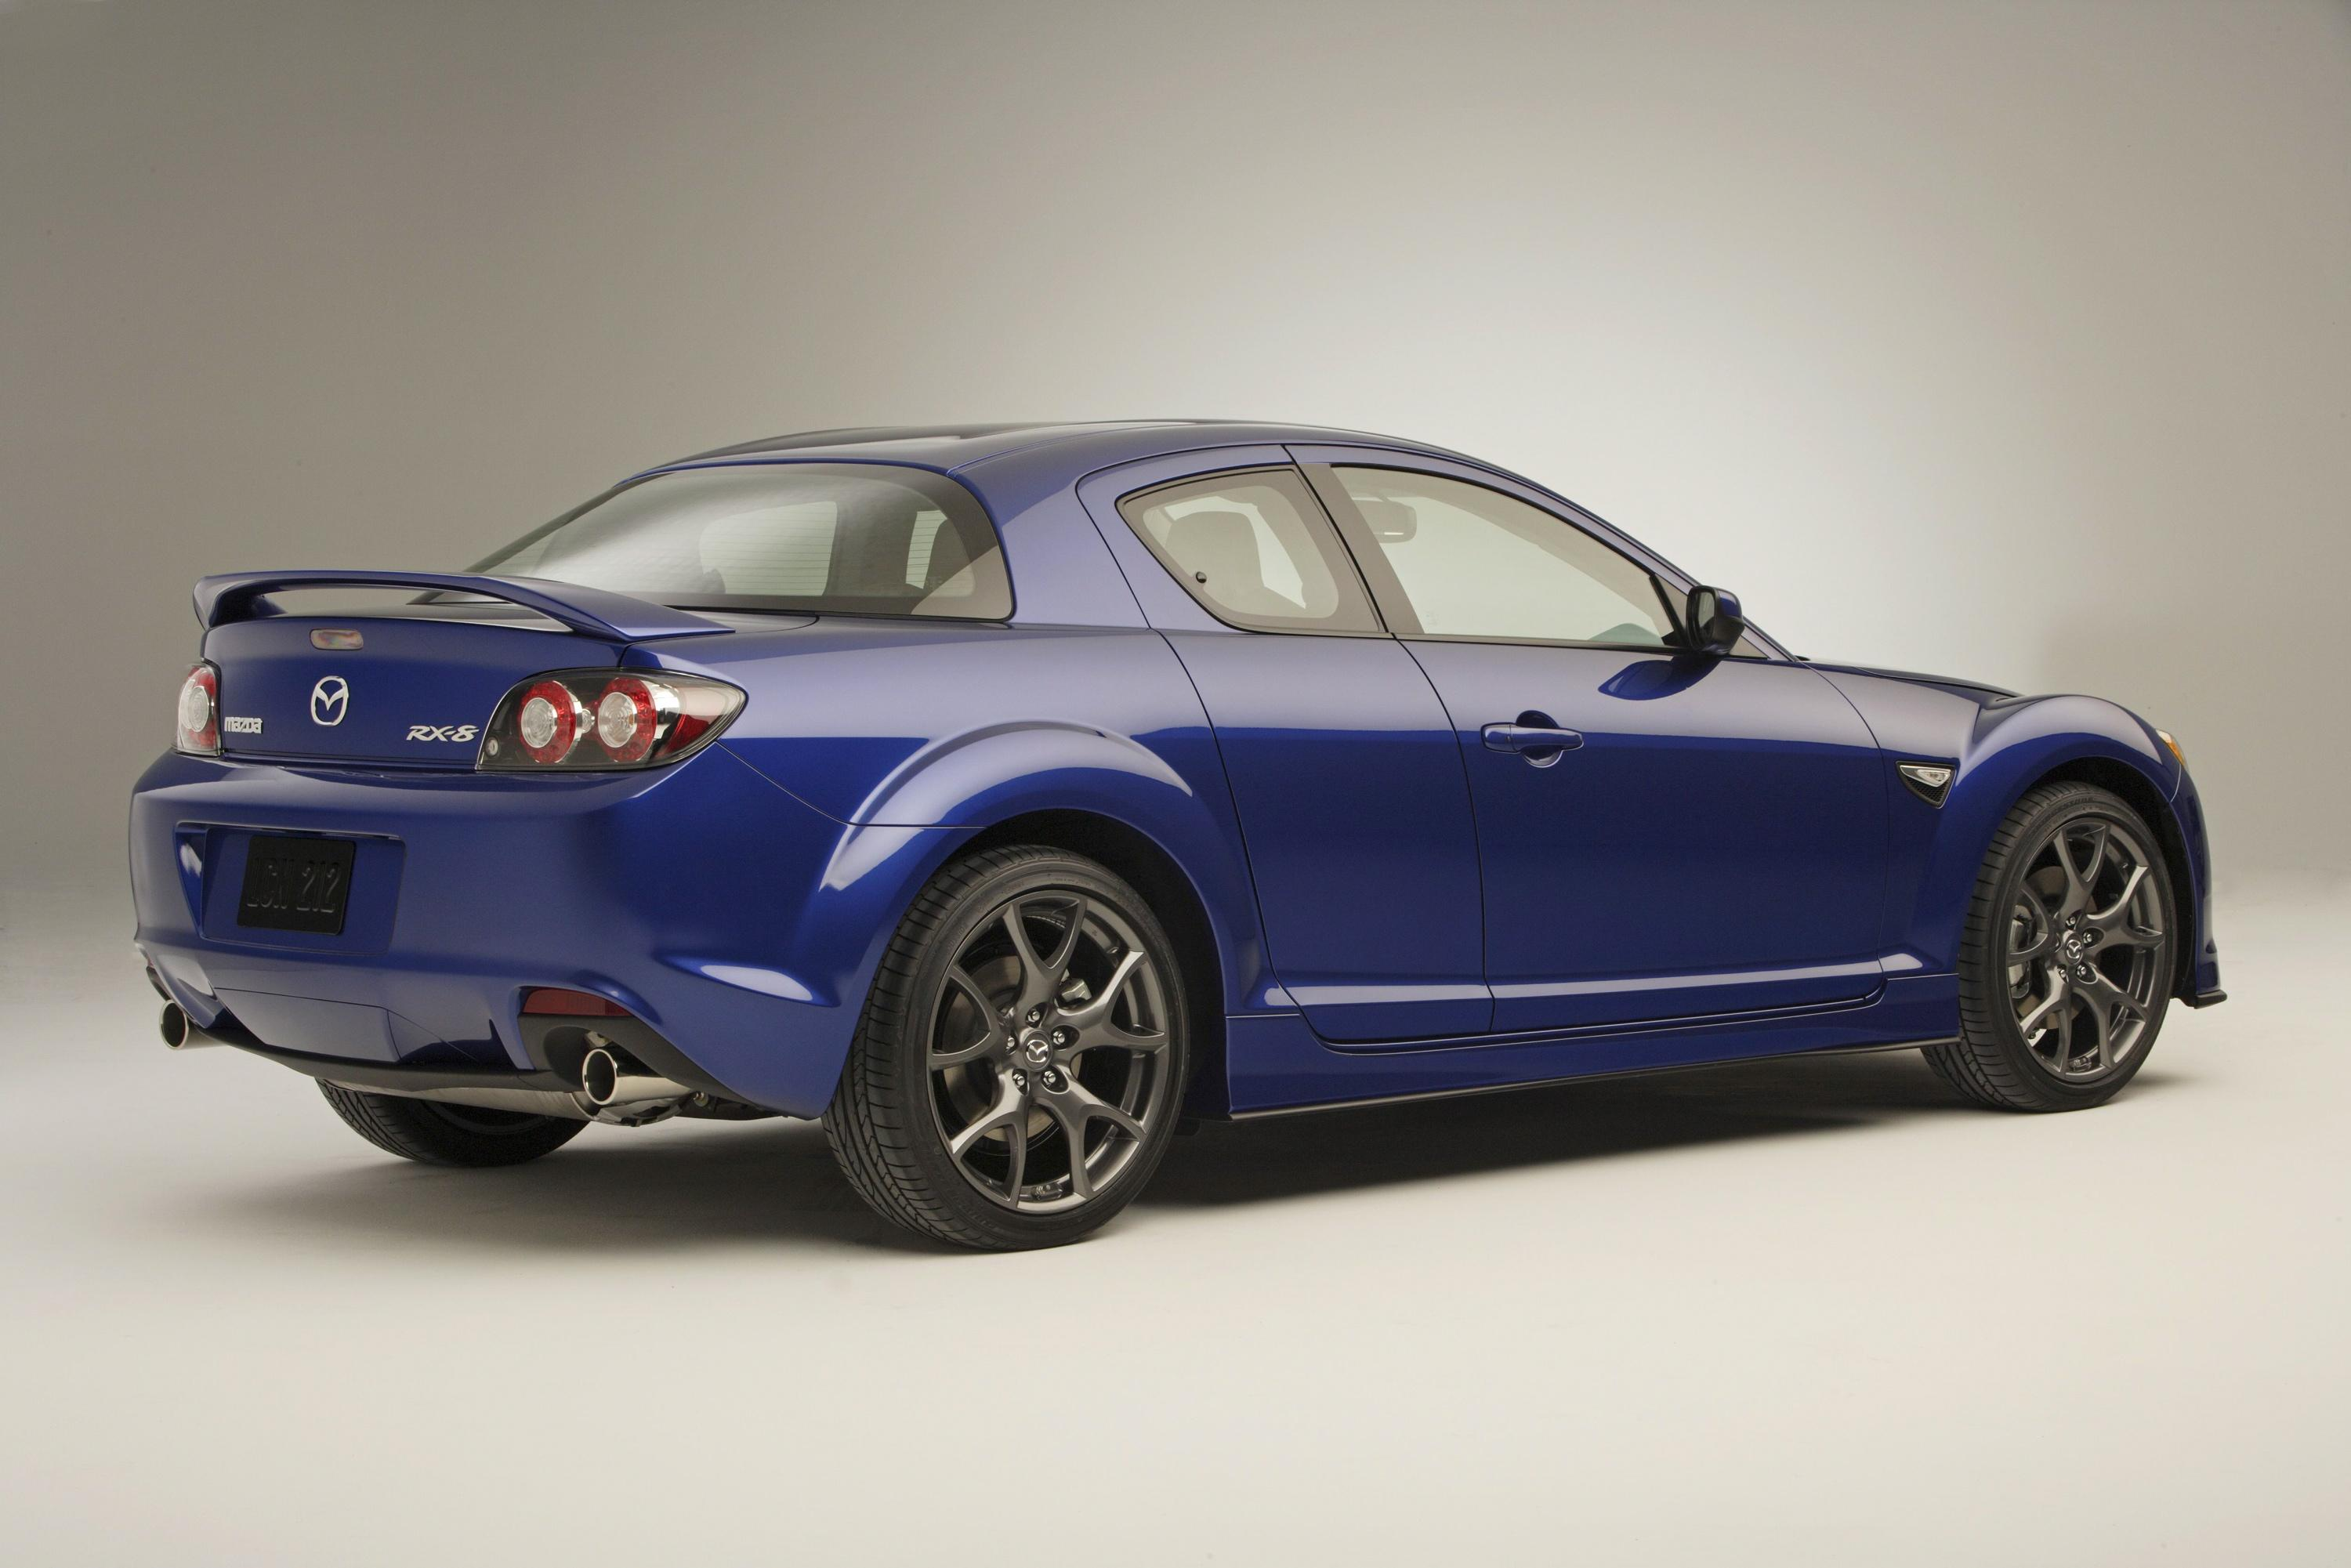 2009 mazda rx-8 review - top speed